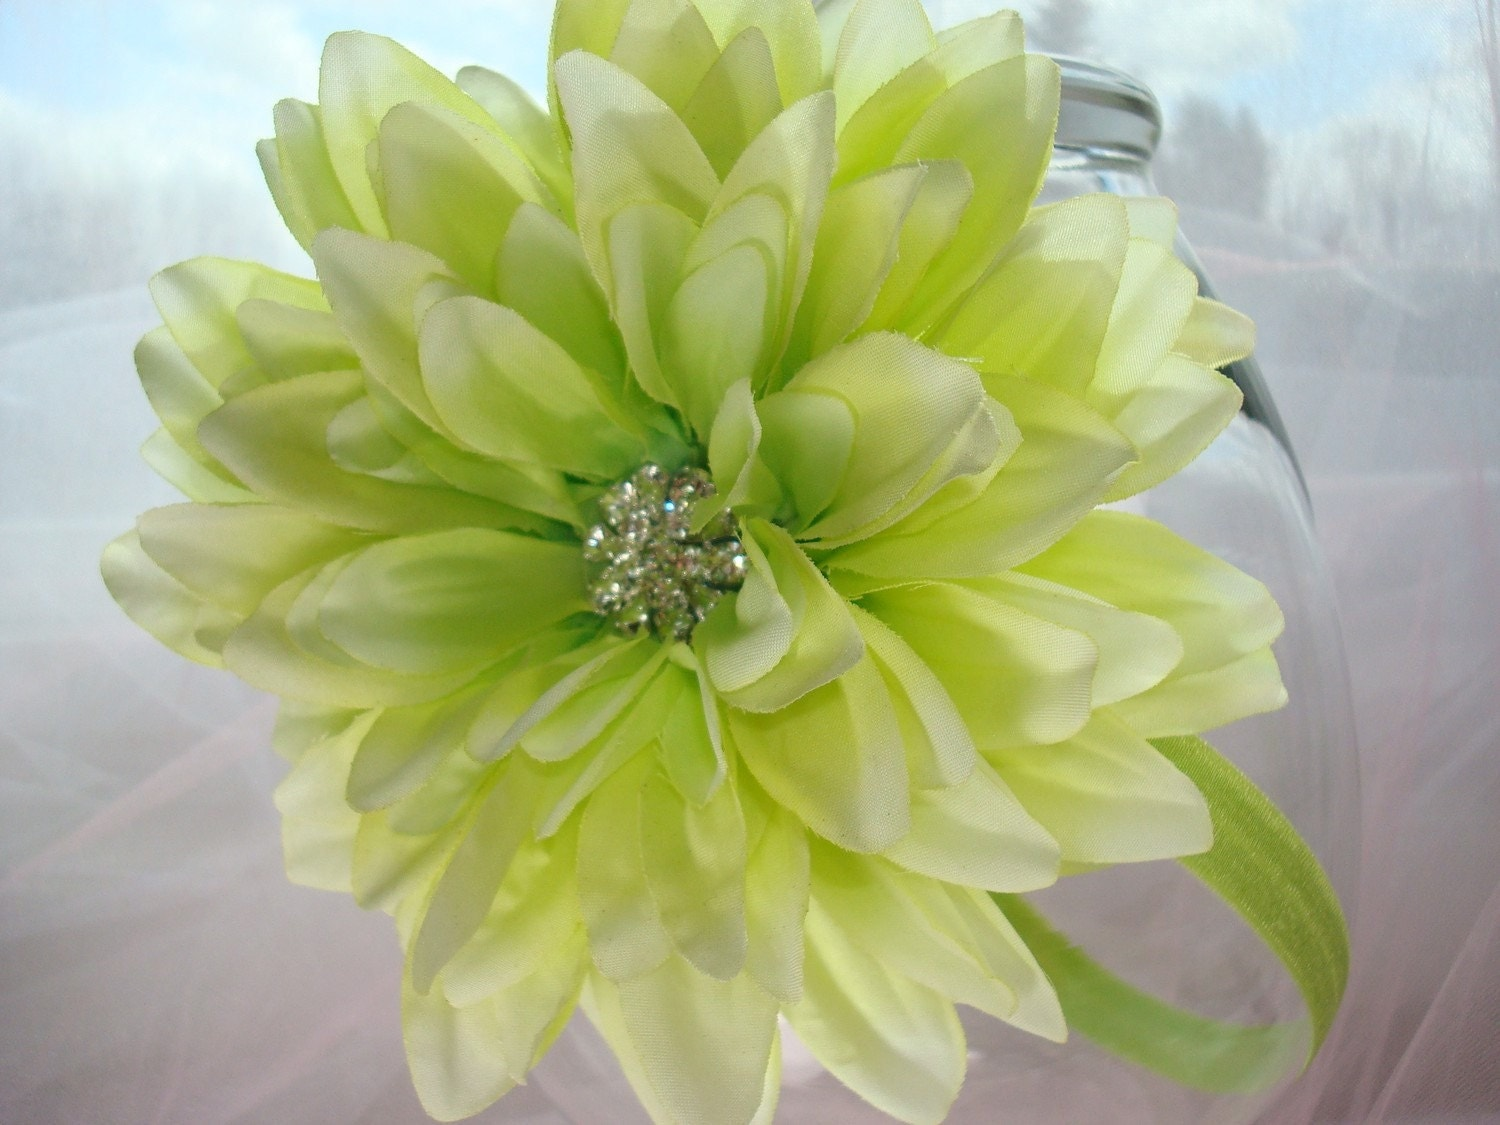 New: Portrait Perfect Soft Pale Lime Dahlia Embellished with Rhinestone Cluster (Detachable) and Lime Green Stretch Ribbon Headband / Fits 10 Months to Adults